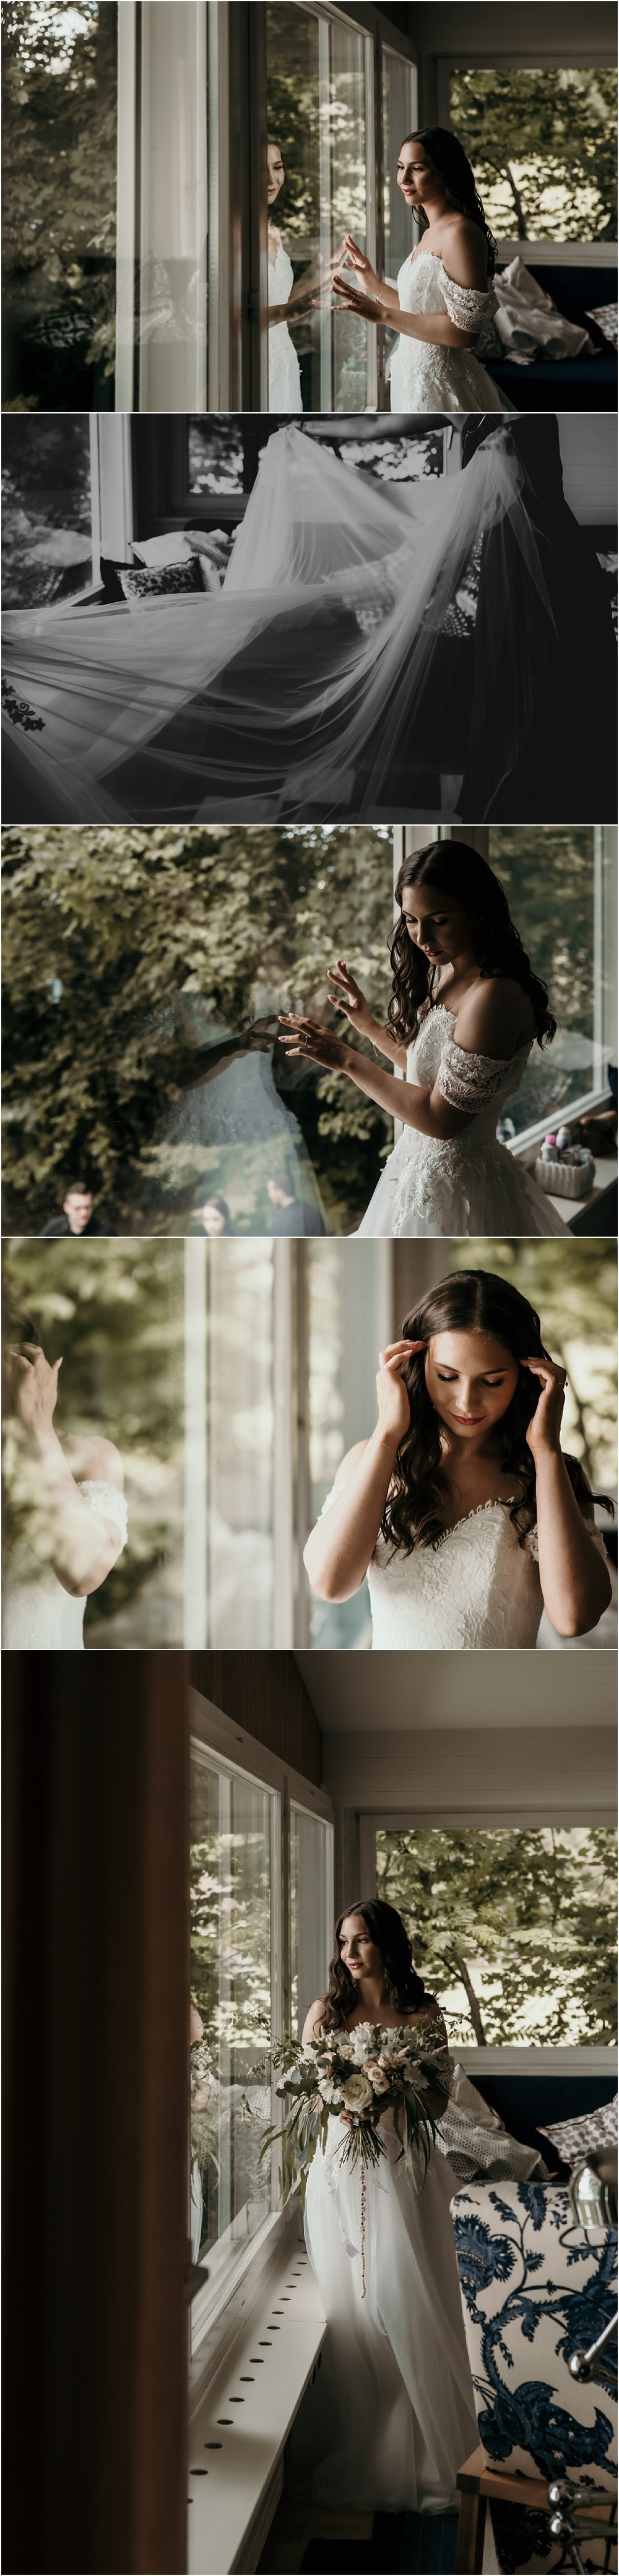 Intimate Destination Wedding Switzerland Morat